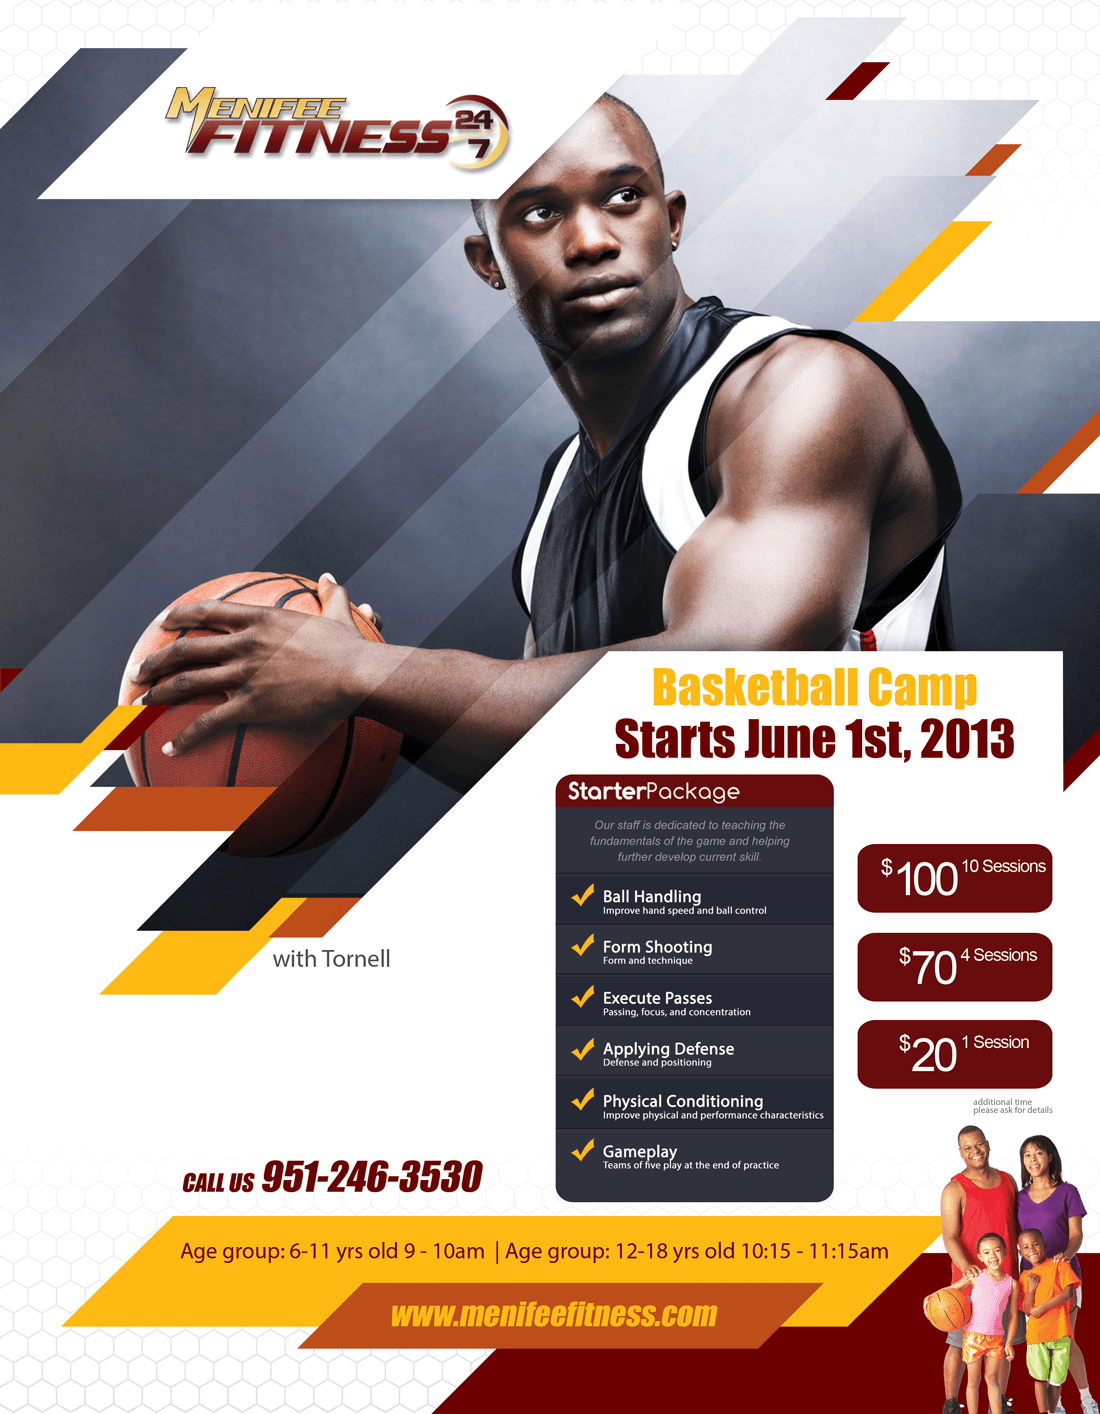 Menifee Fitness Basketball Camp